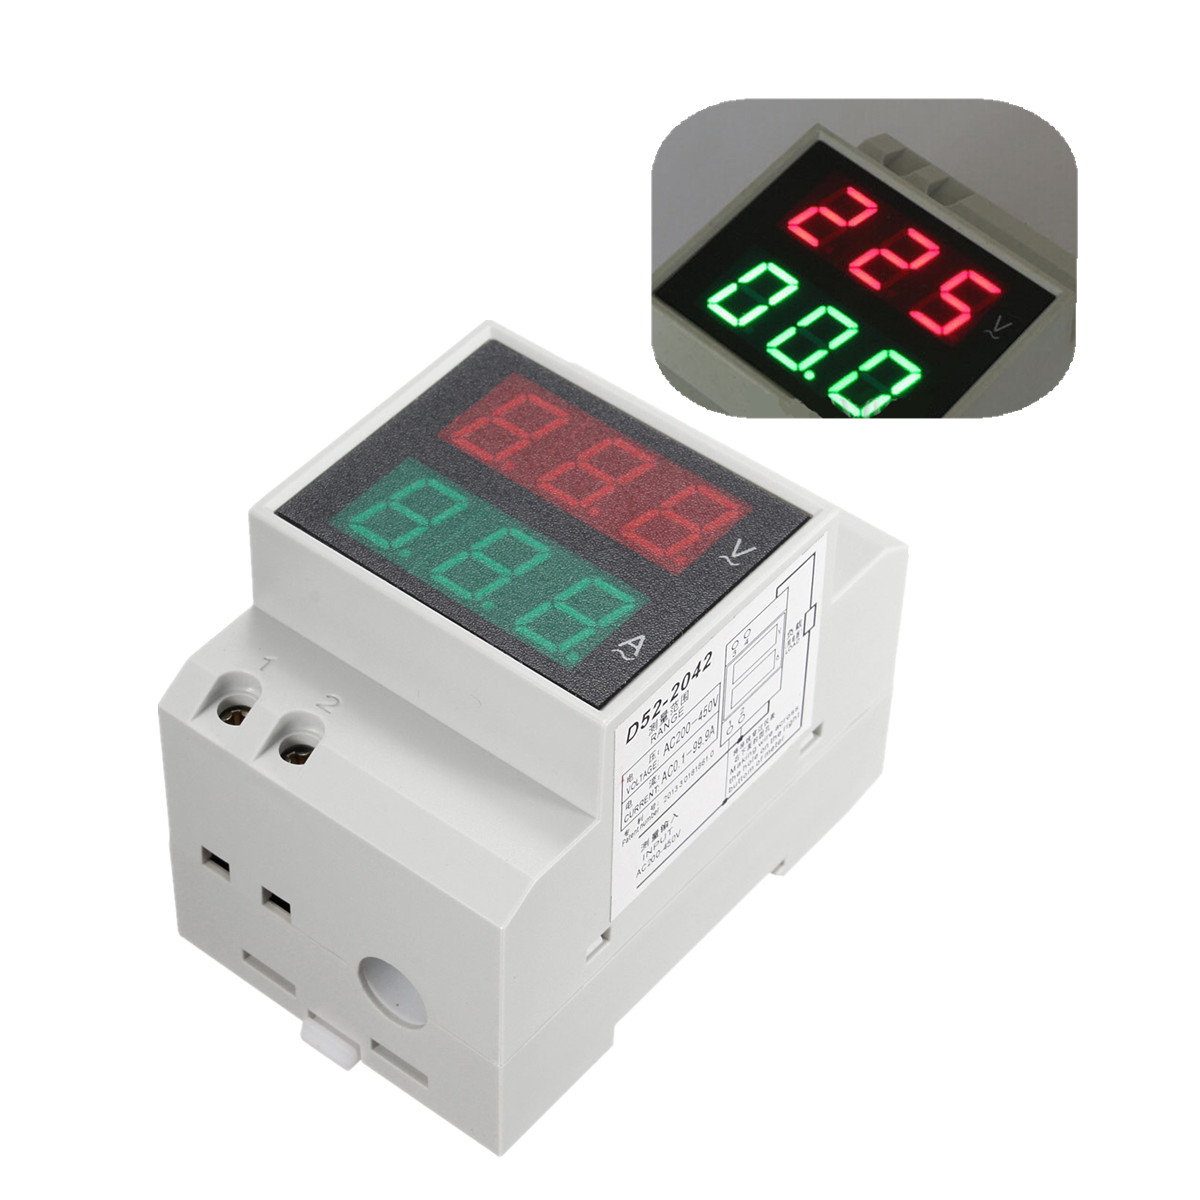 LED Digital Dual Display Din rail AC Voltmeter Ammeter Meter AC80 300V  #9B3038